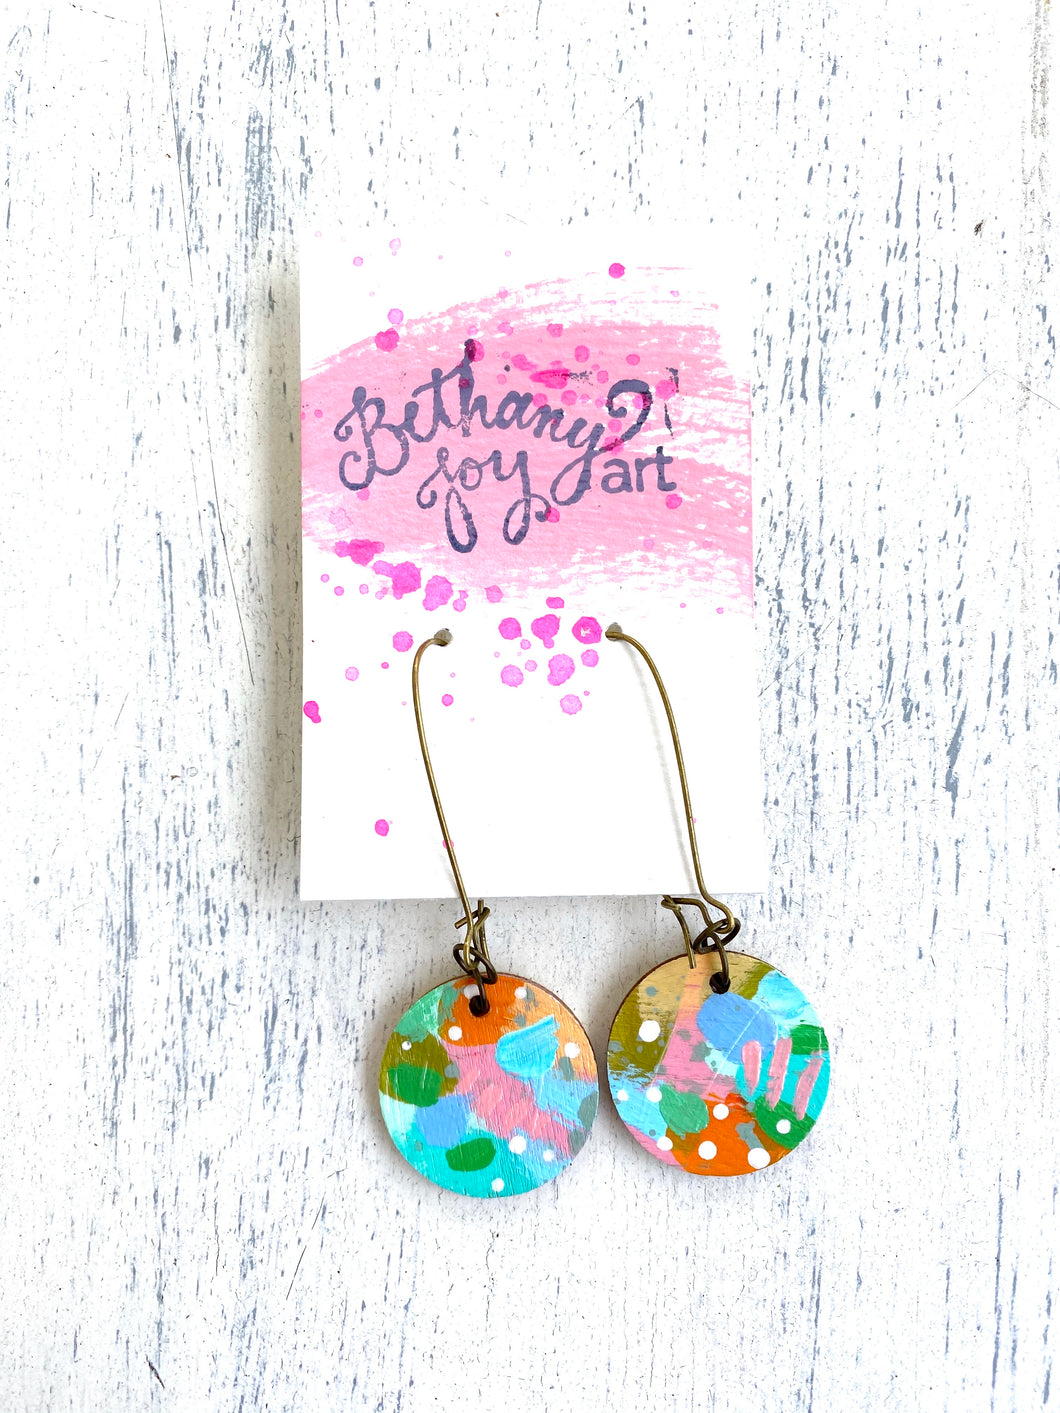 Colorful, Hand Painted Earrings 35 - Bethany Joy Art